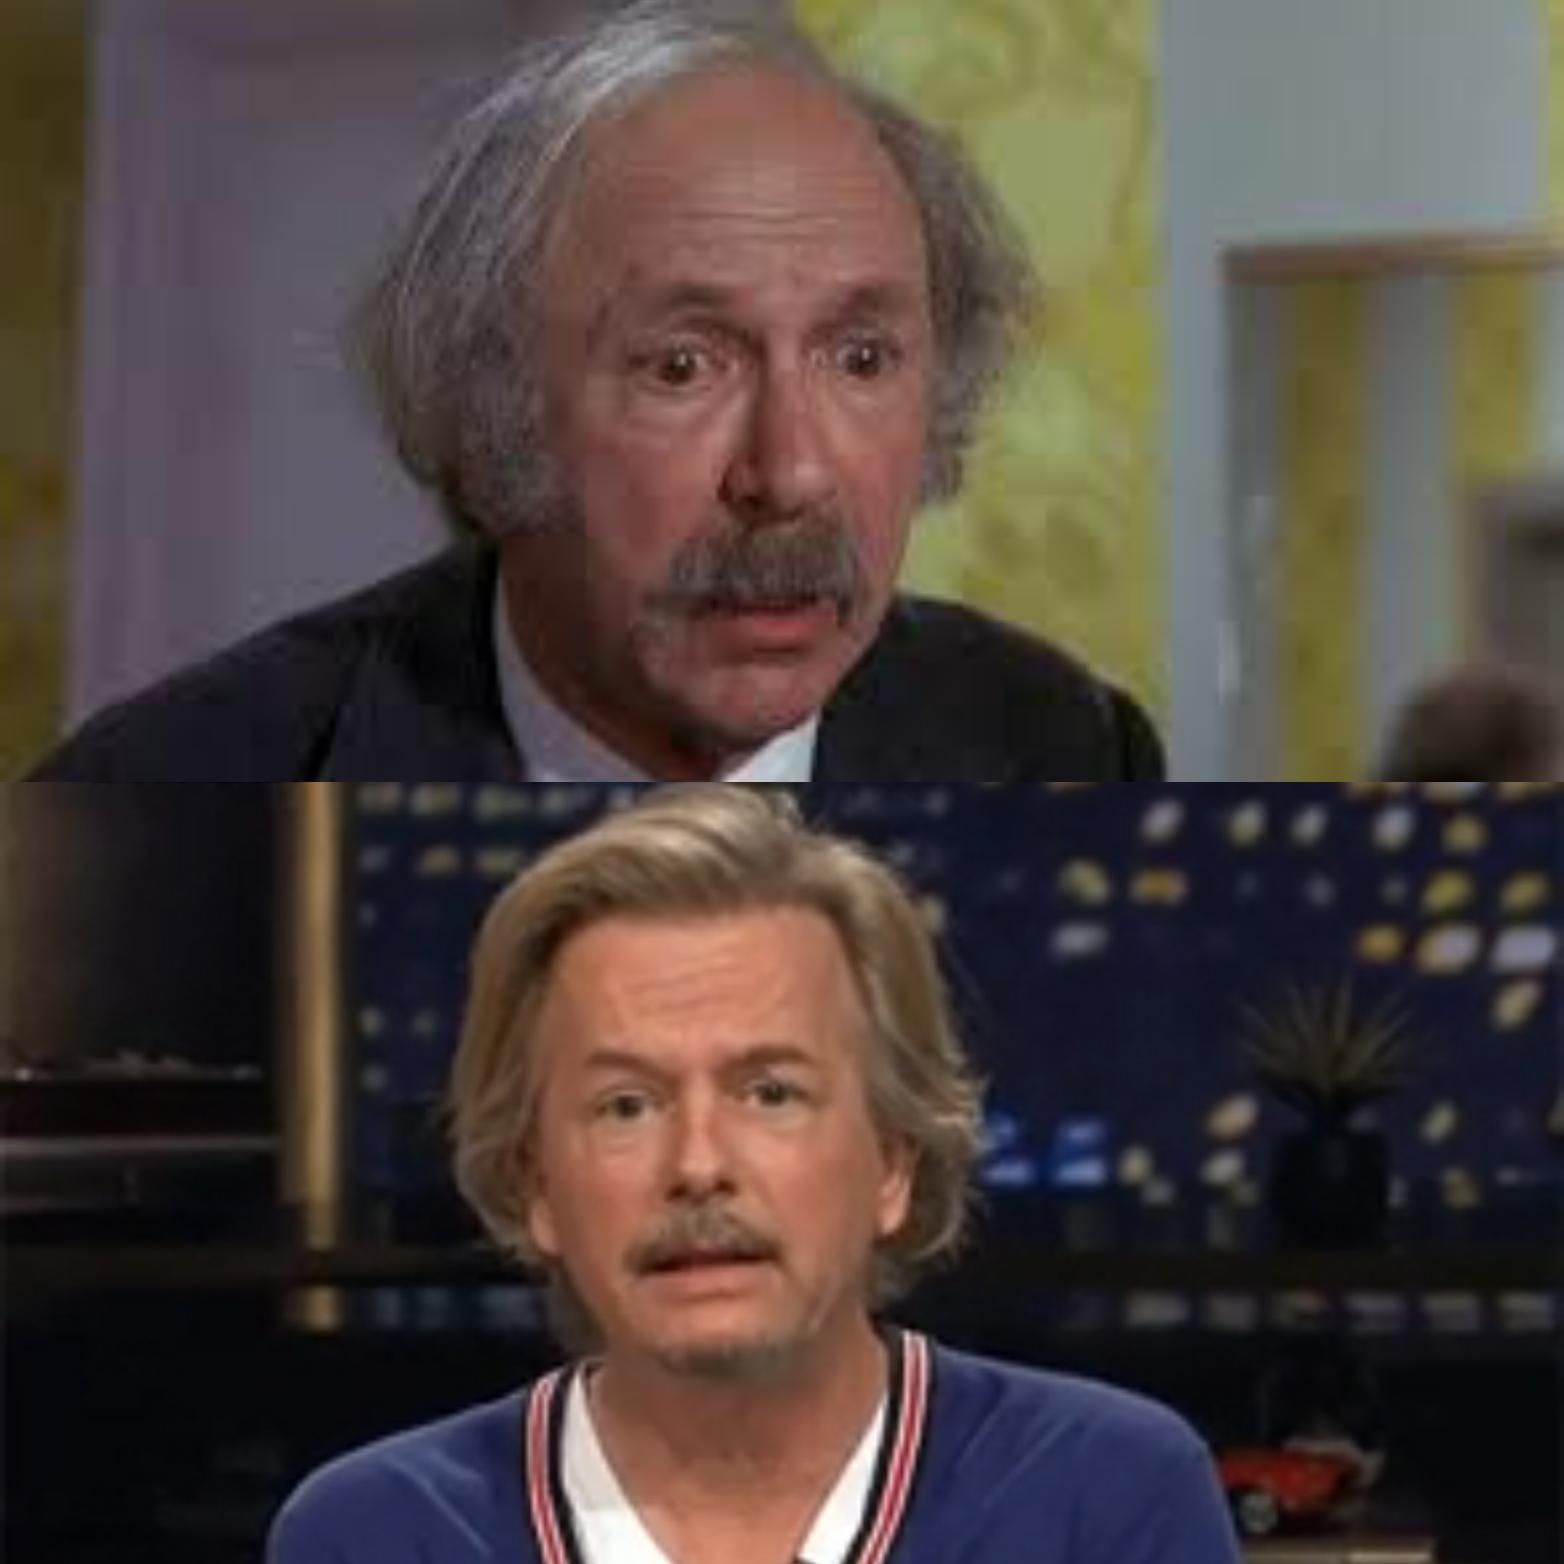 David Spade is starting to look a lot like the shitty grandpa from Willy Wonka.